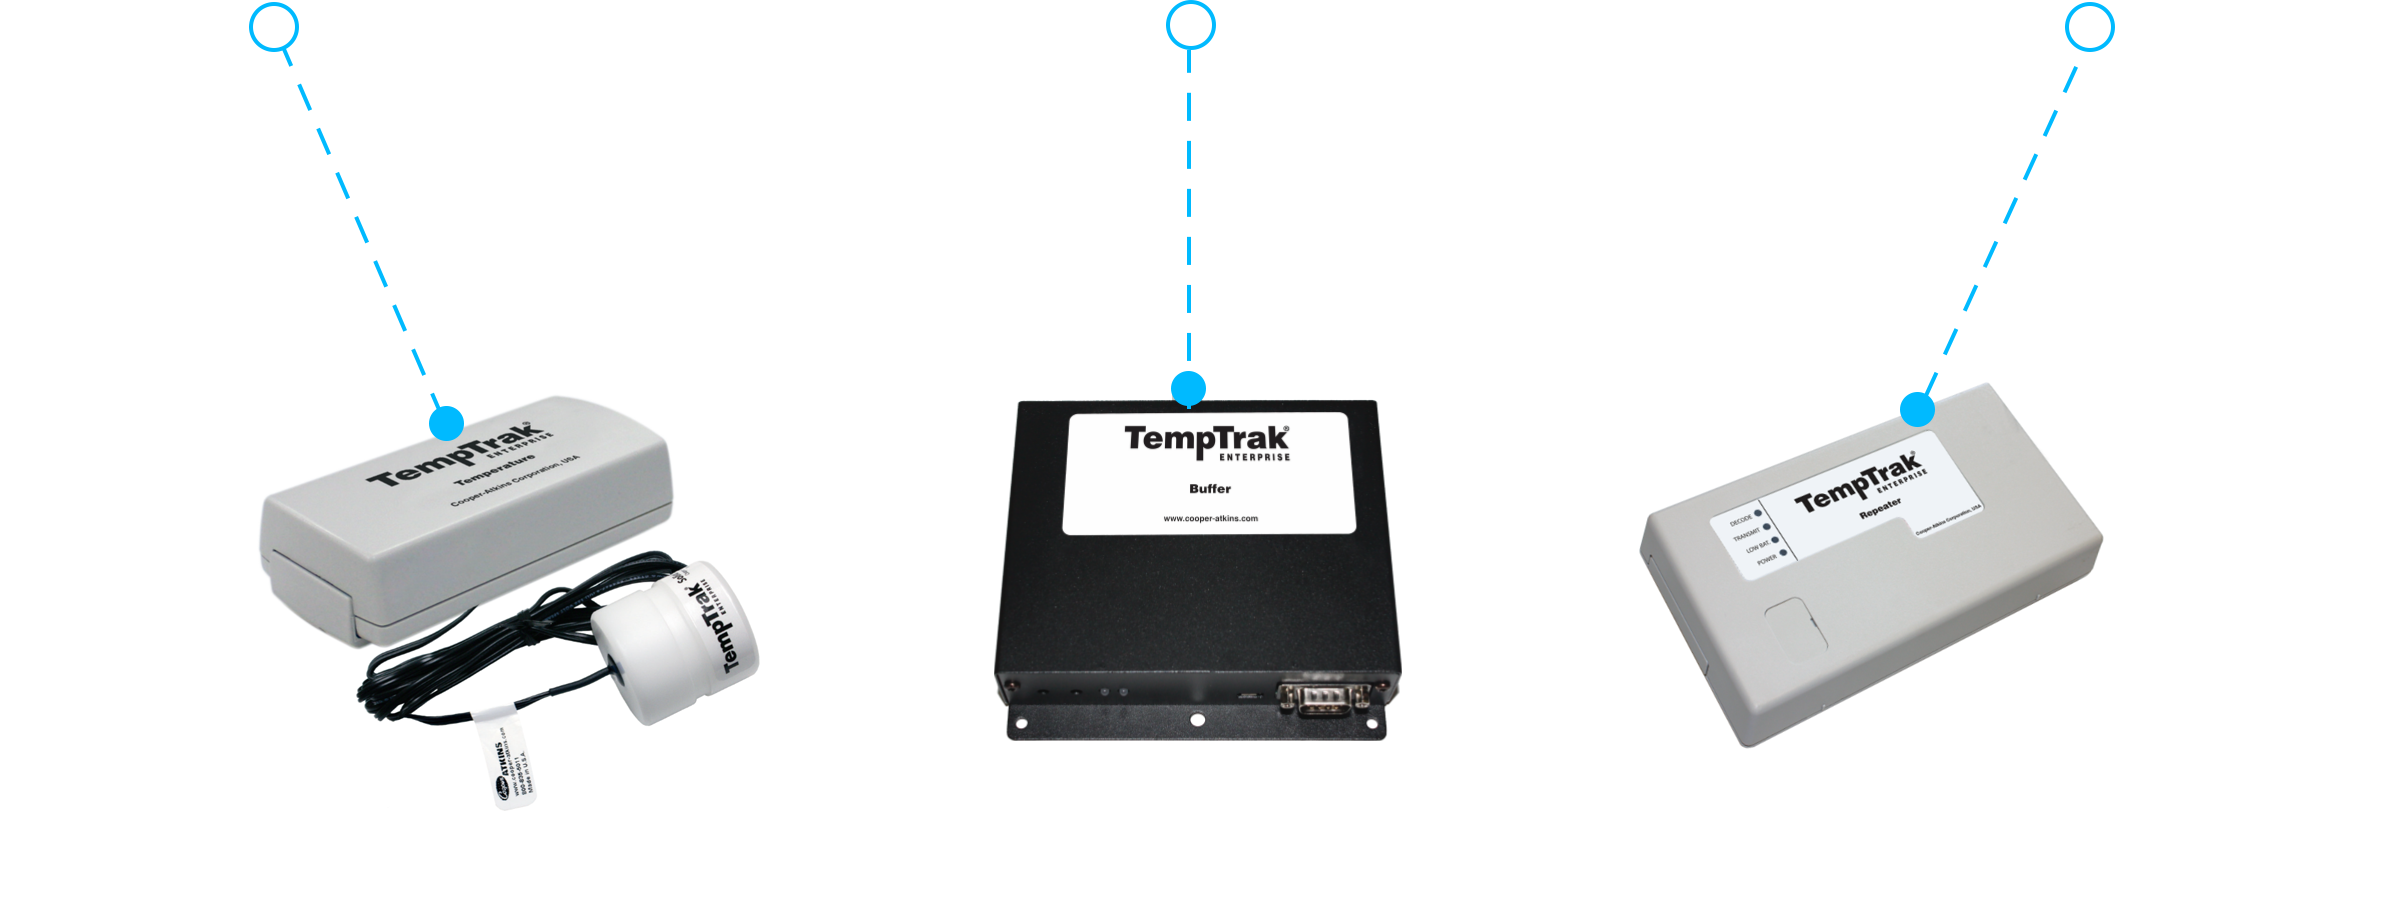 Temptrak Central Monitoring System Introtech Cold